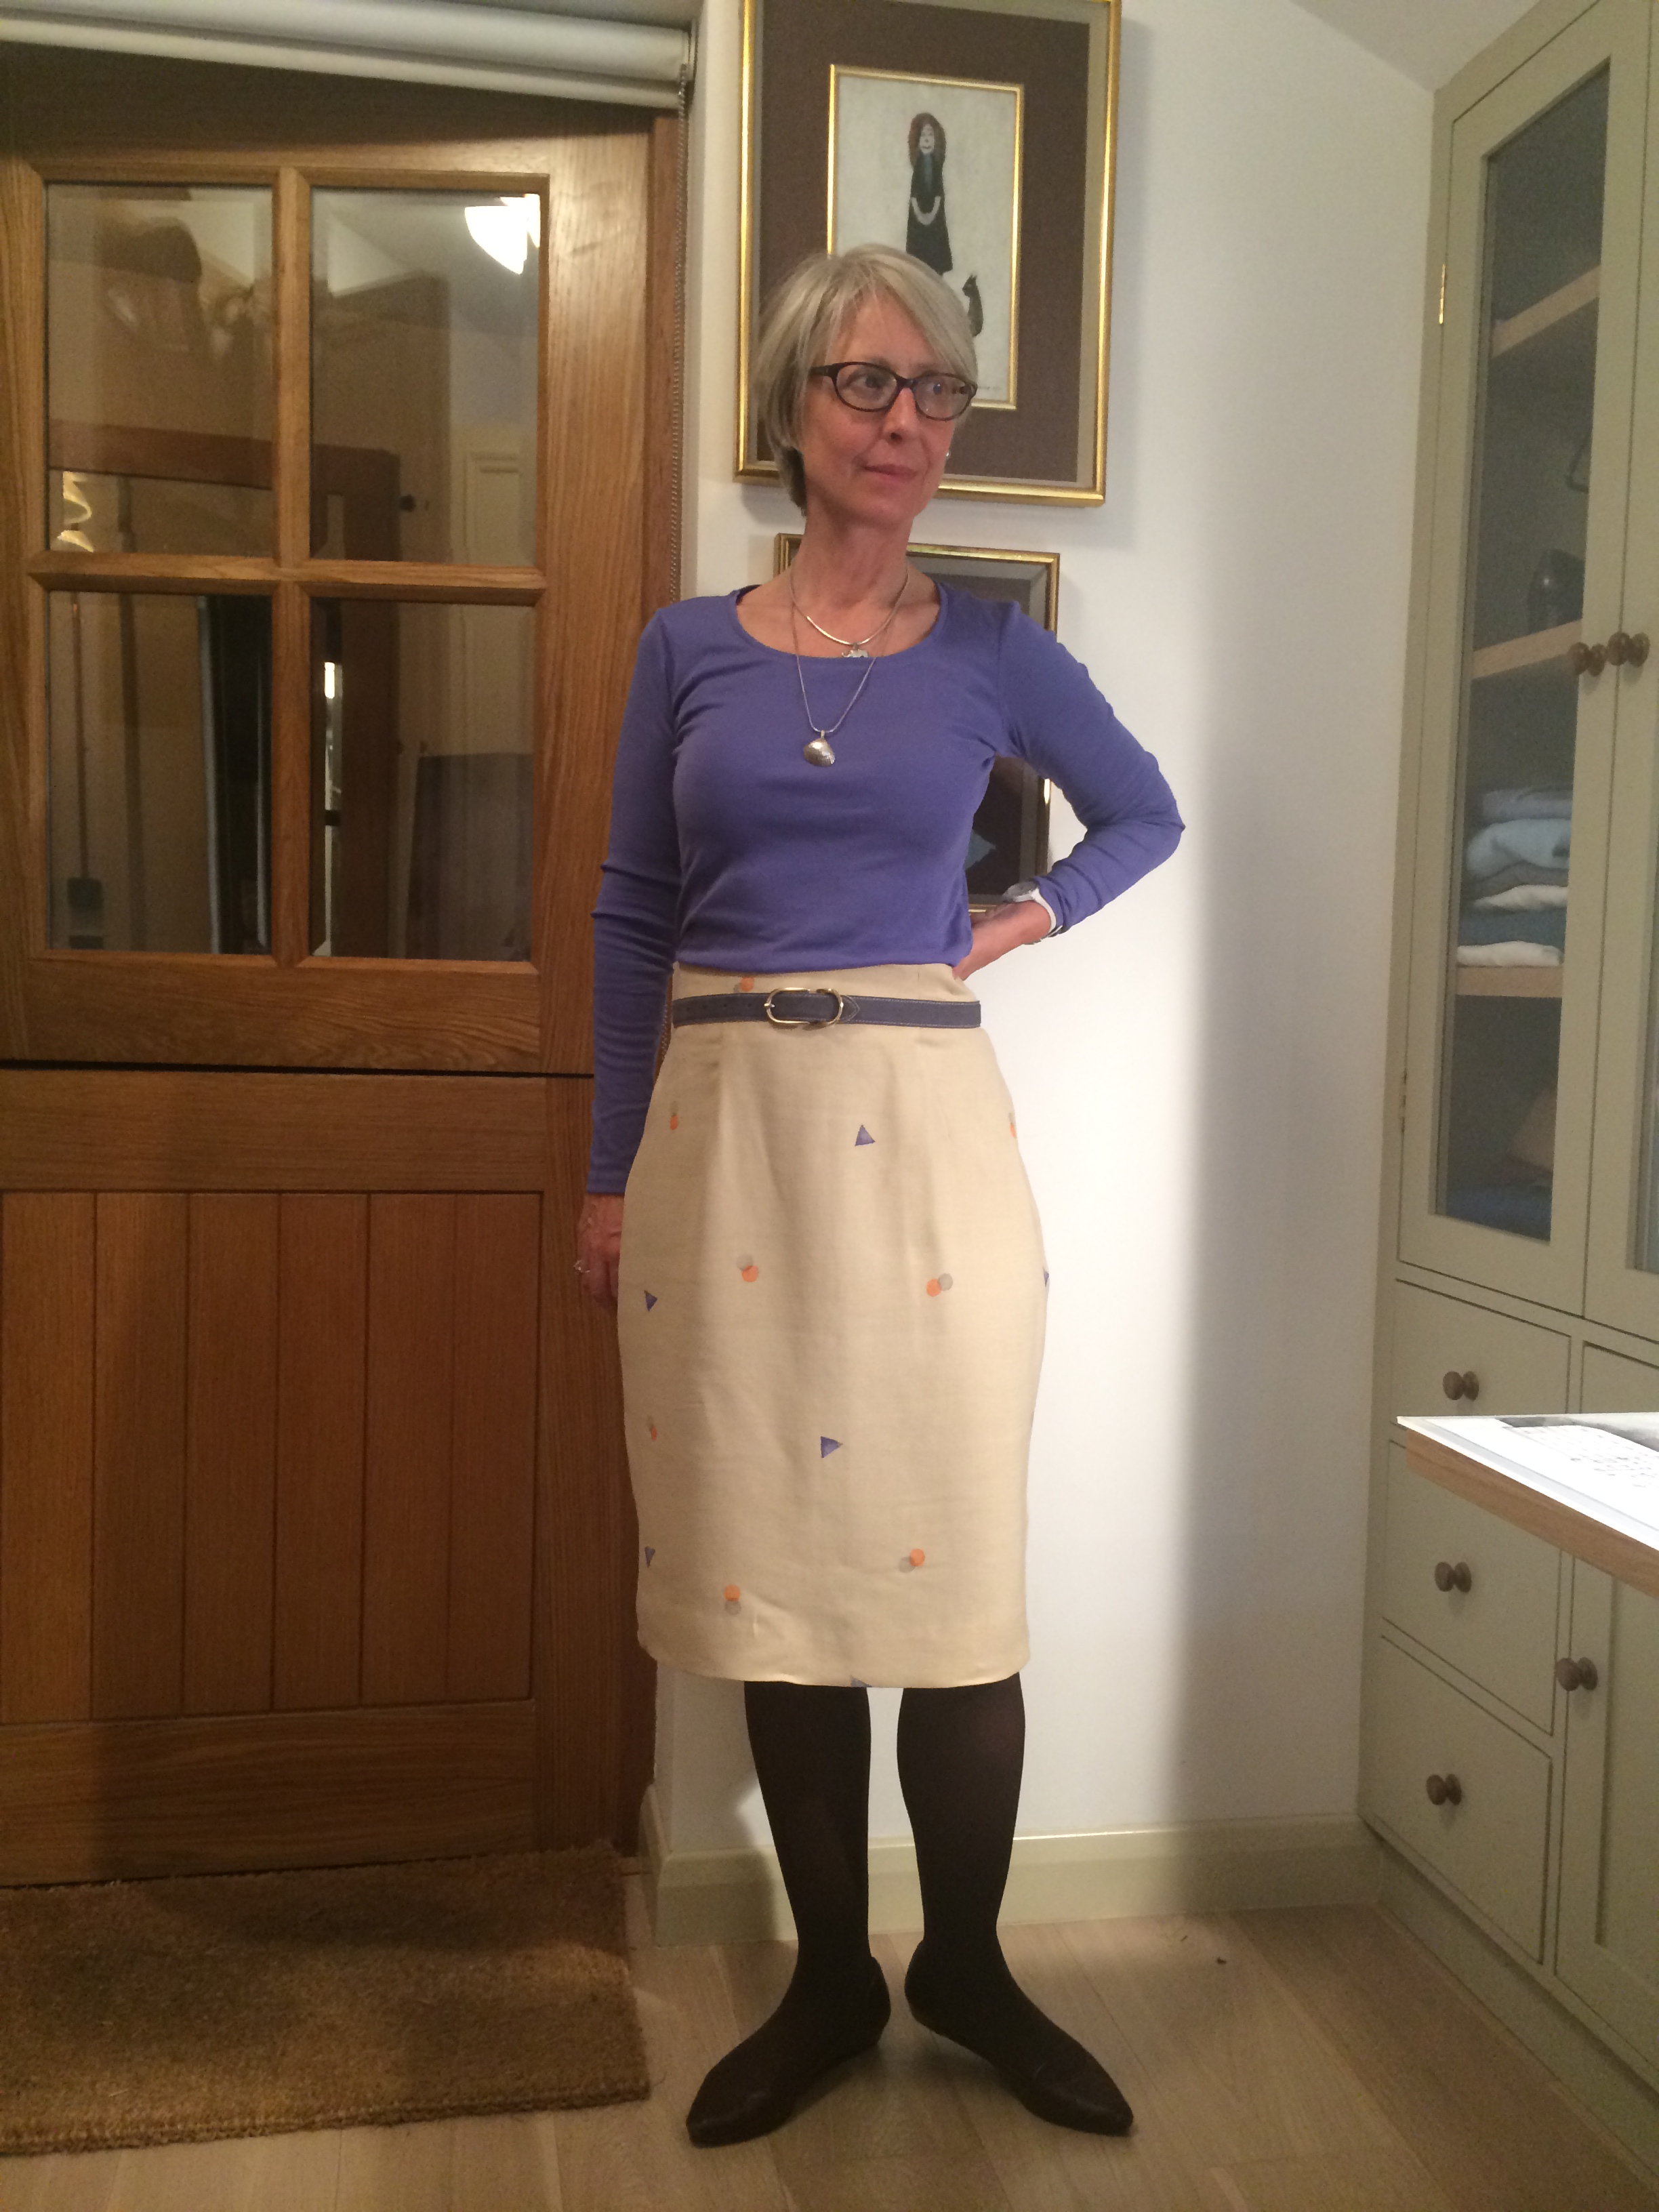 More trouser experiments – making trousers from the Curvy Pencil skirt pattern